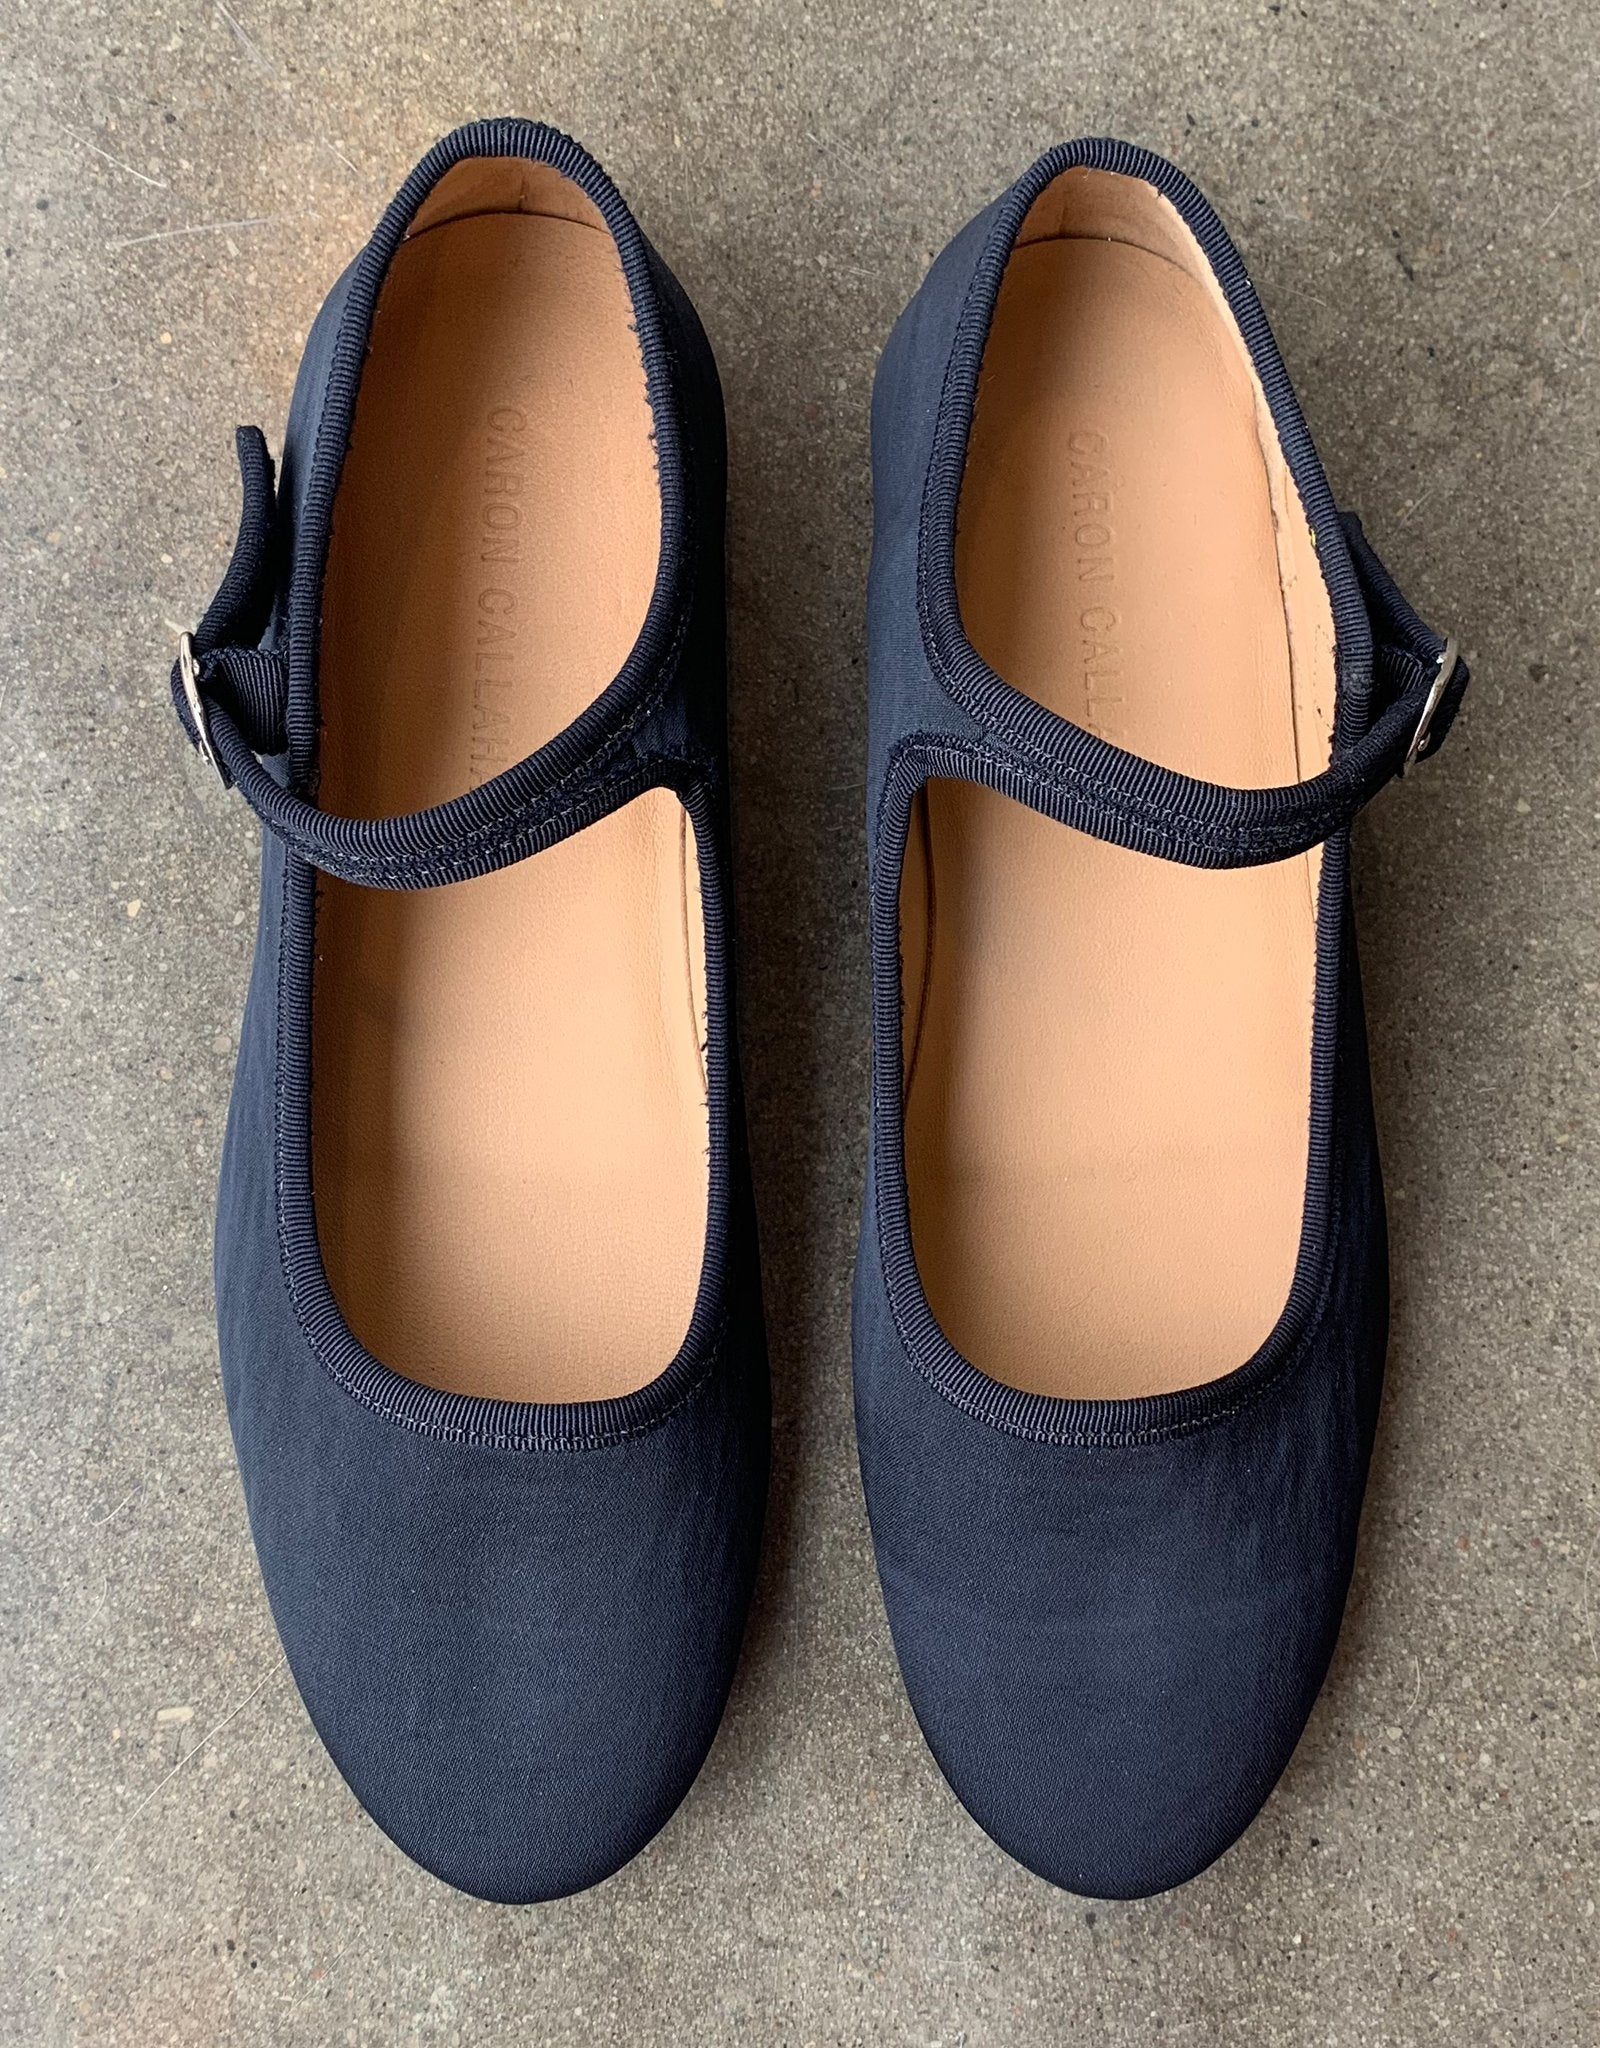 Caron Callahan Ellie Mary Janes in Navy from Shop FAWN